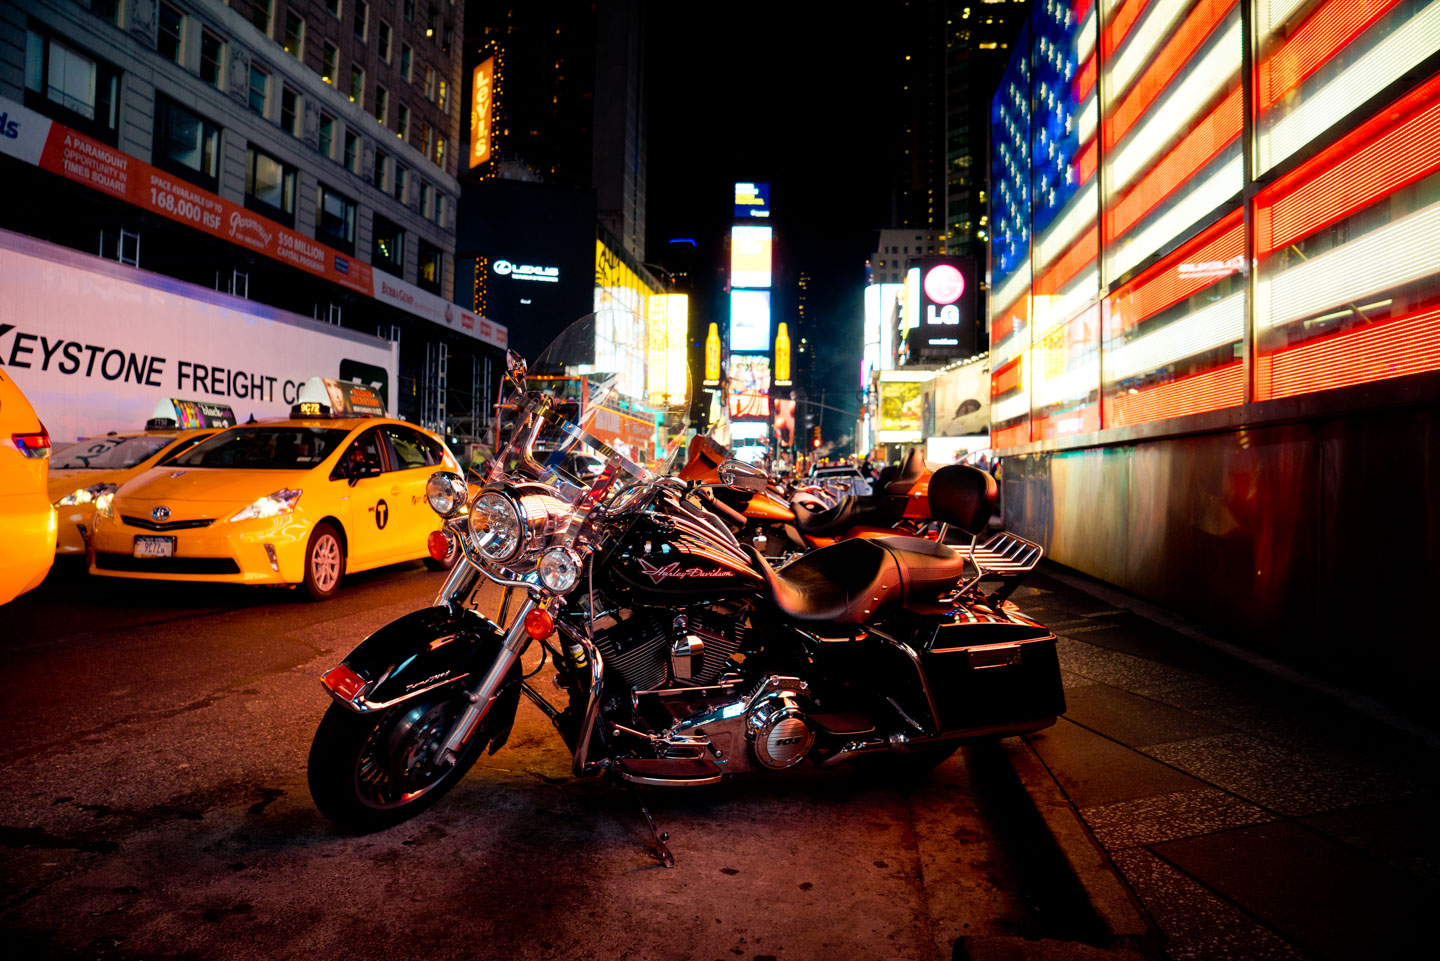 new york-queens village motorcycle rentals - harley-davidson